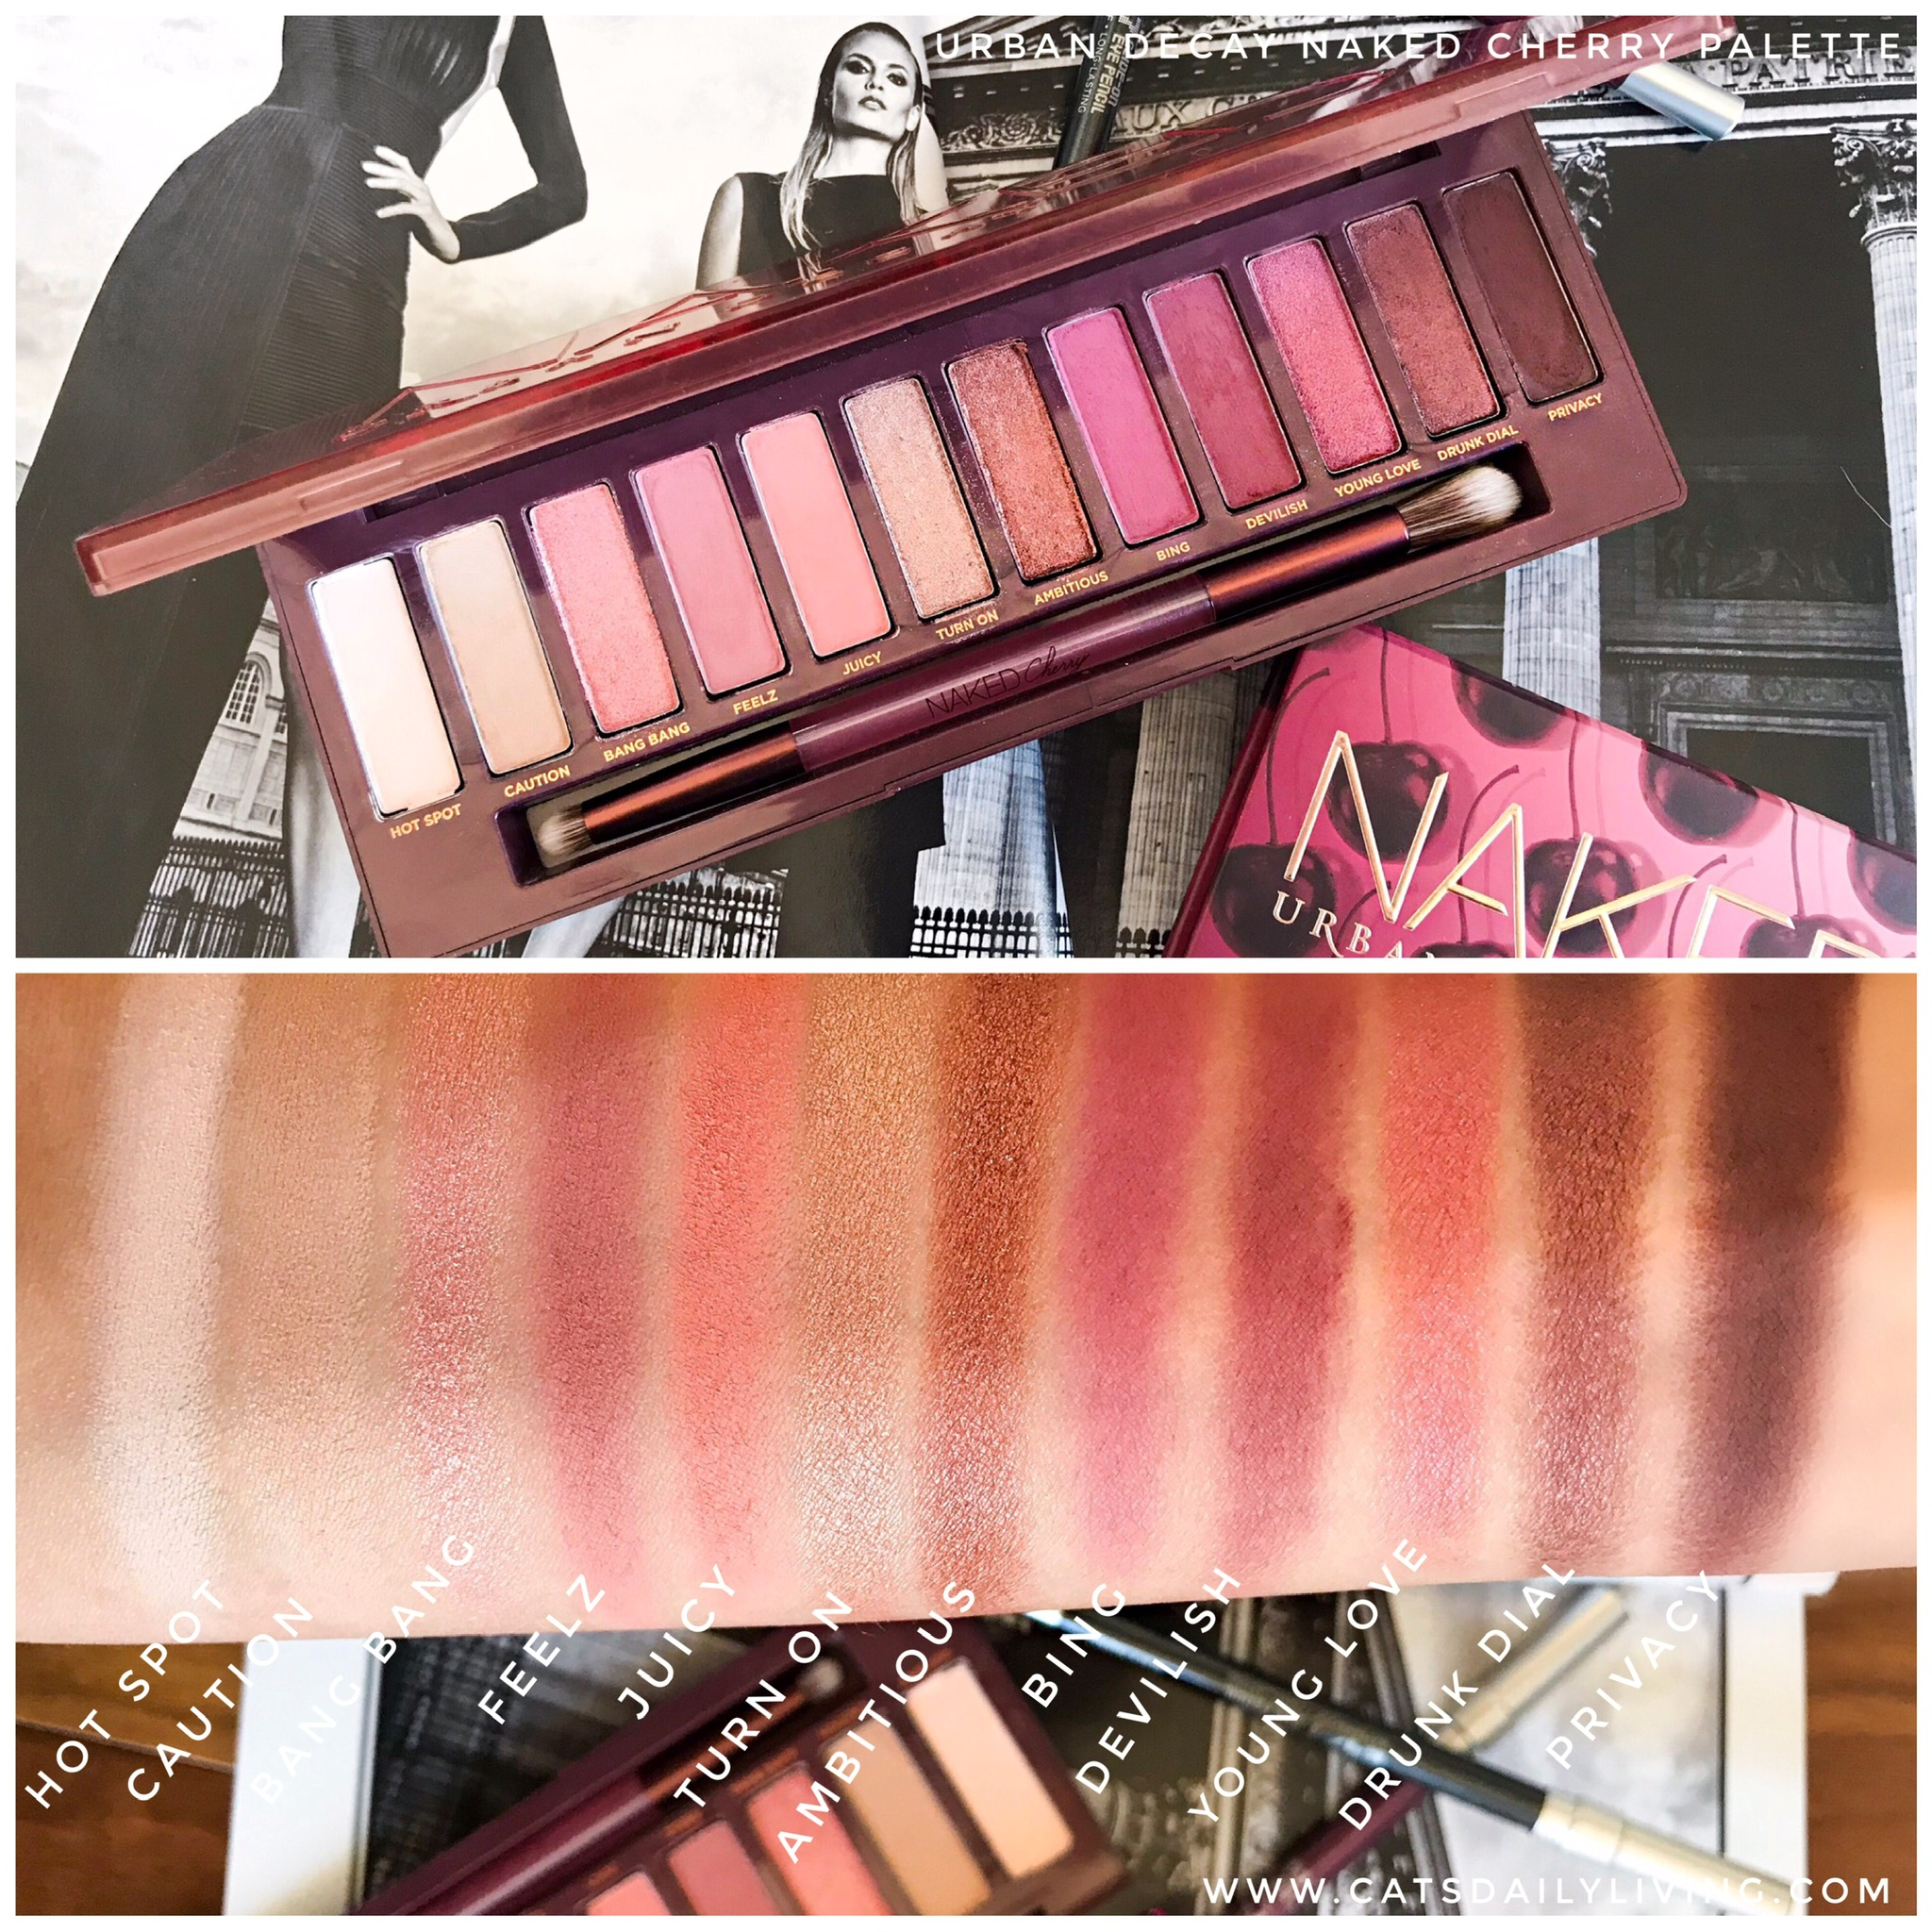 Naked Palette by Urban Decay #22